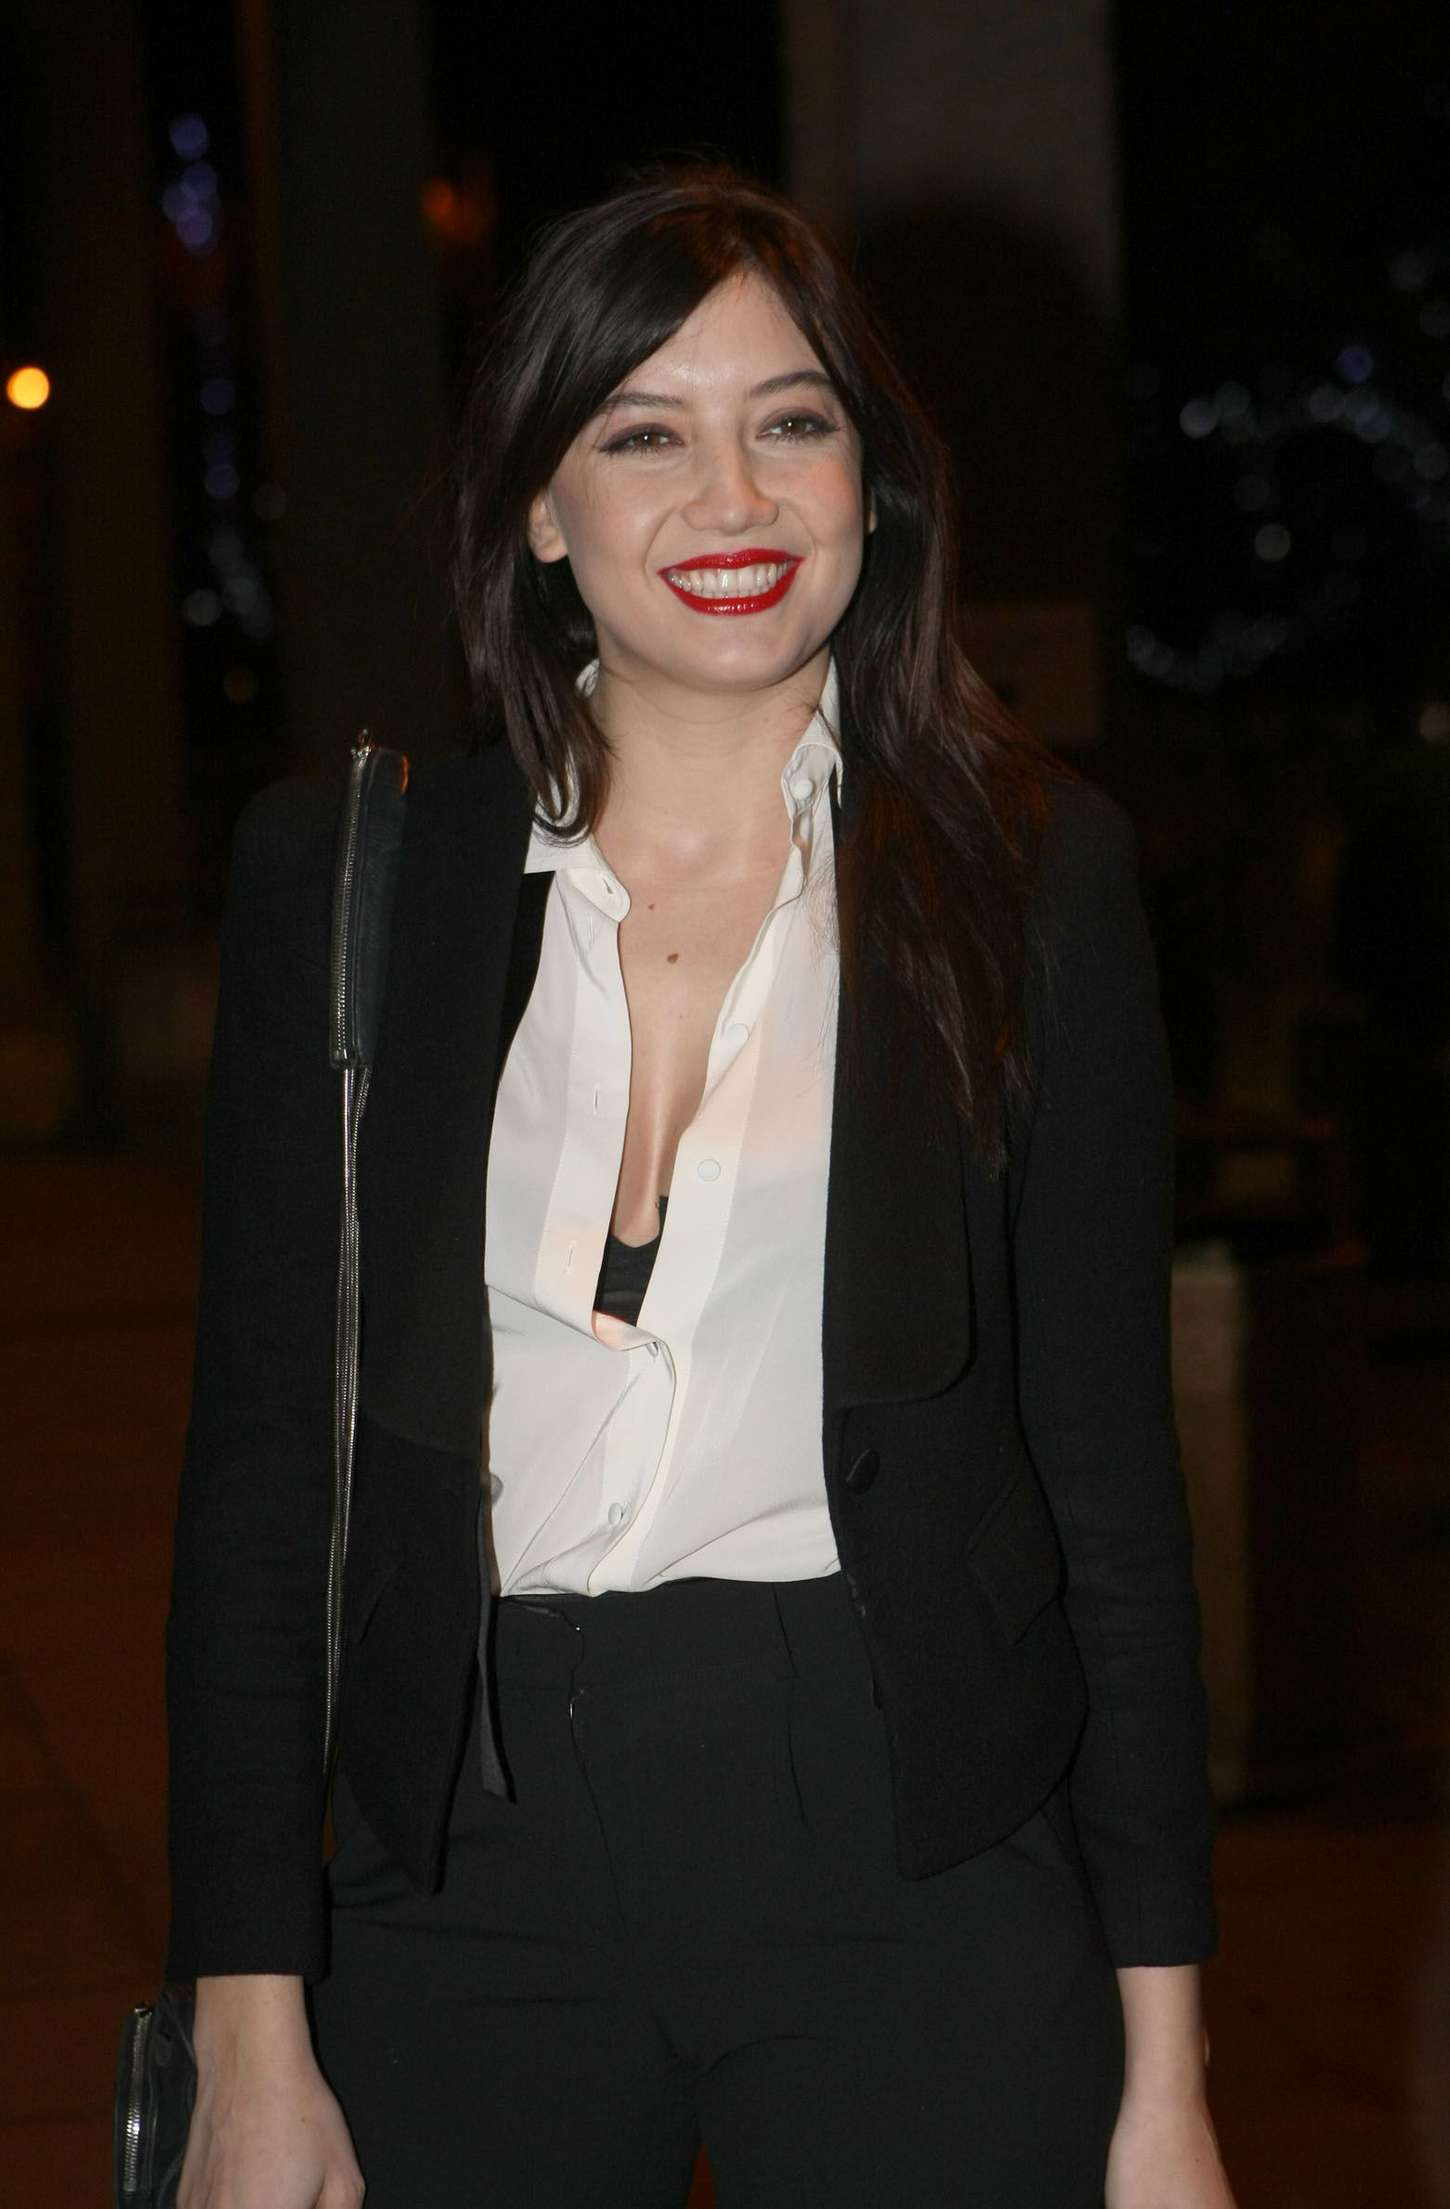 Daisy Lowe - Arriving at The Late Late Show in Dublin